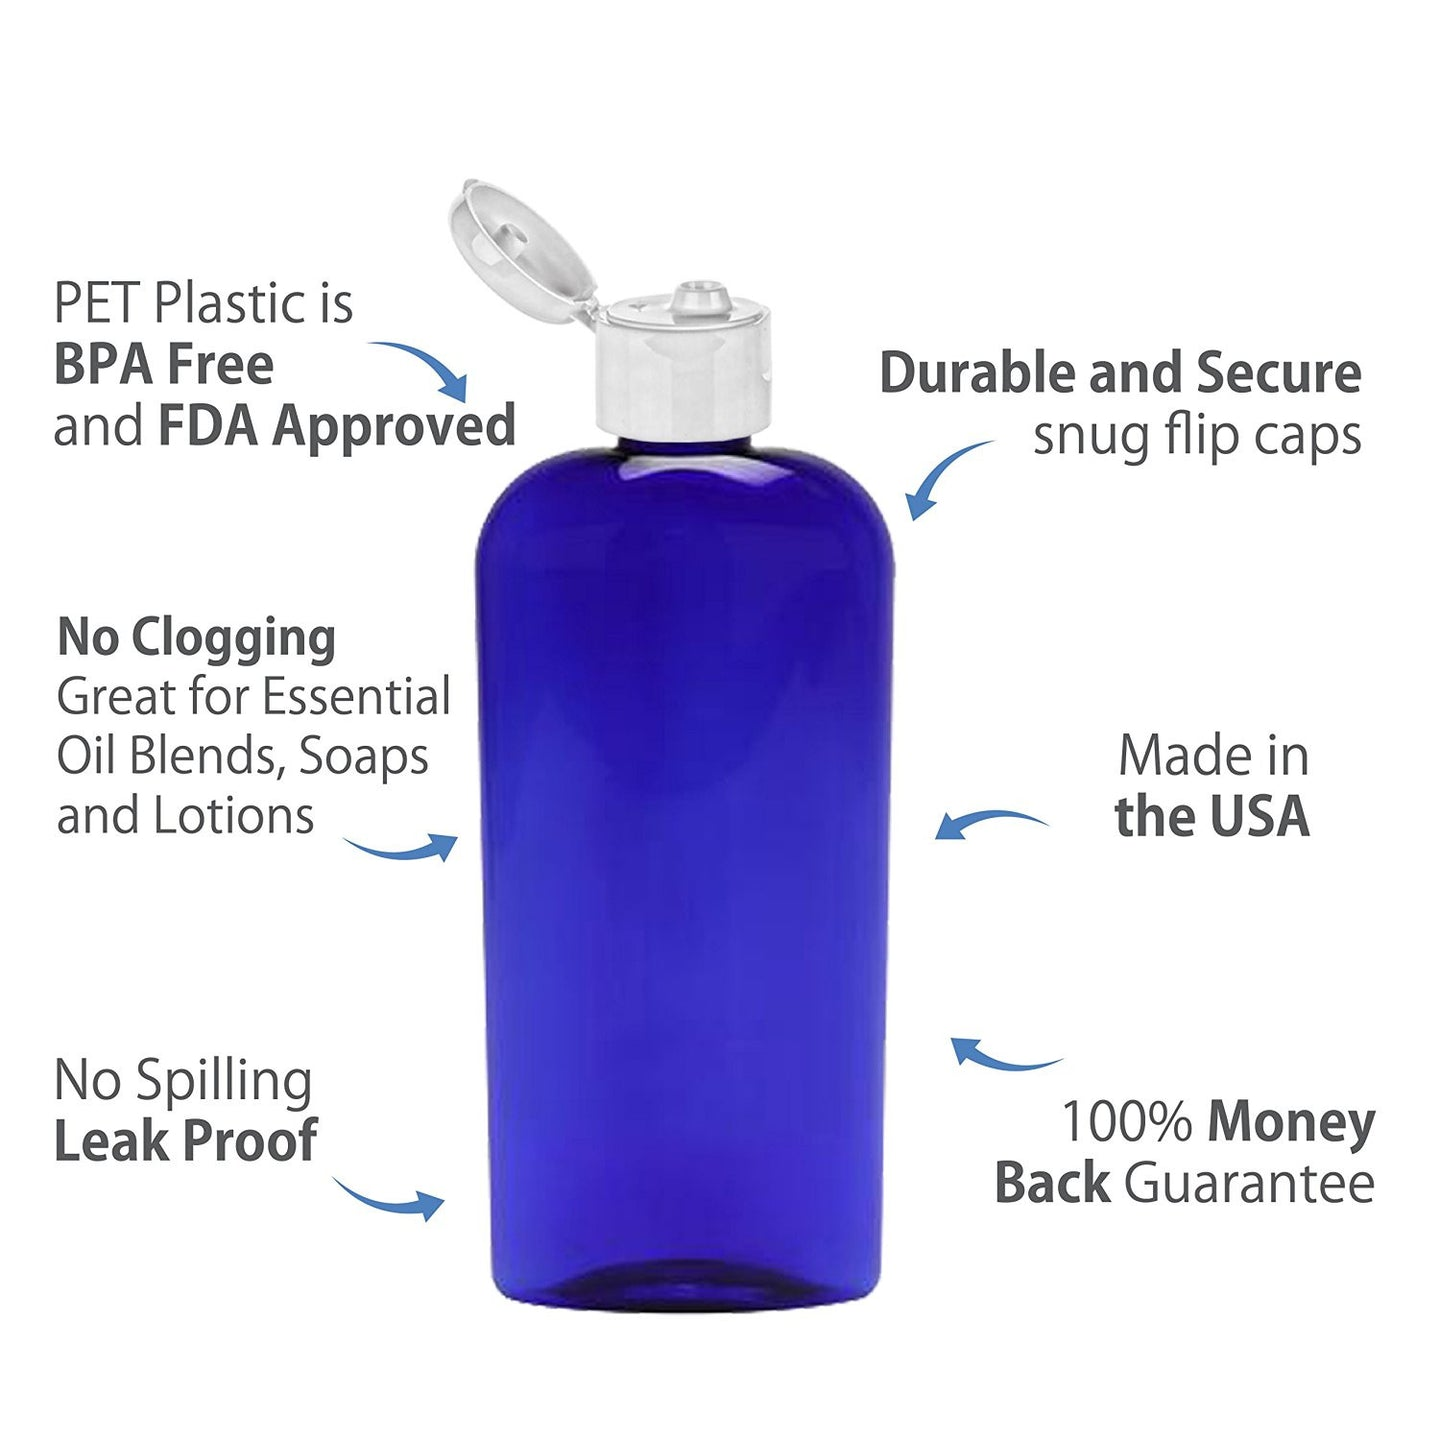 MoYo Natural Labs 8 oz Flip Cap Bottles, Empty Containers for Shampoo or Lotions, BPA Free PET Plastic Squeezable Toiletry/Cosmetic Bottles (3 pack, Cobalt Blue)